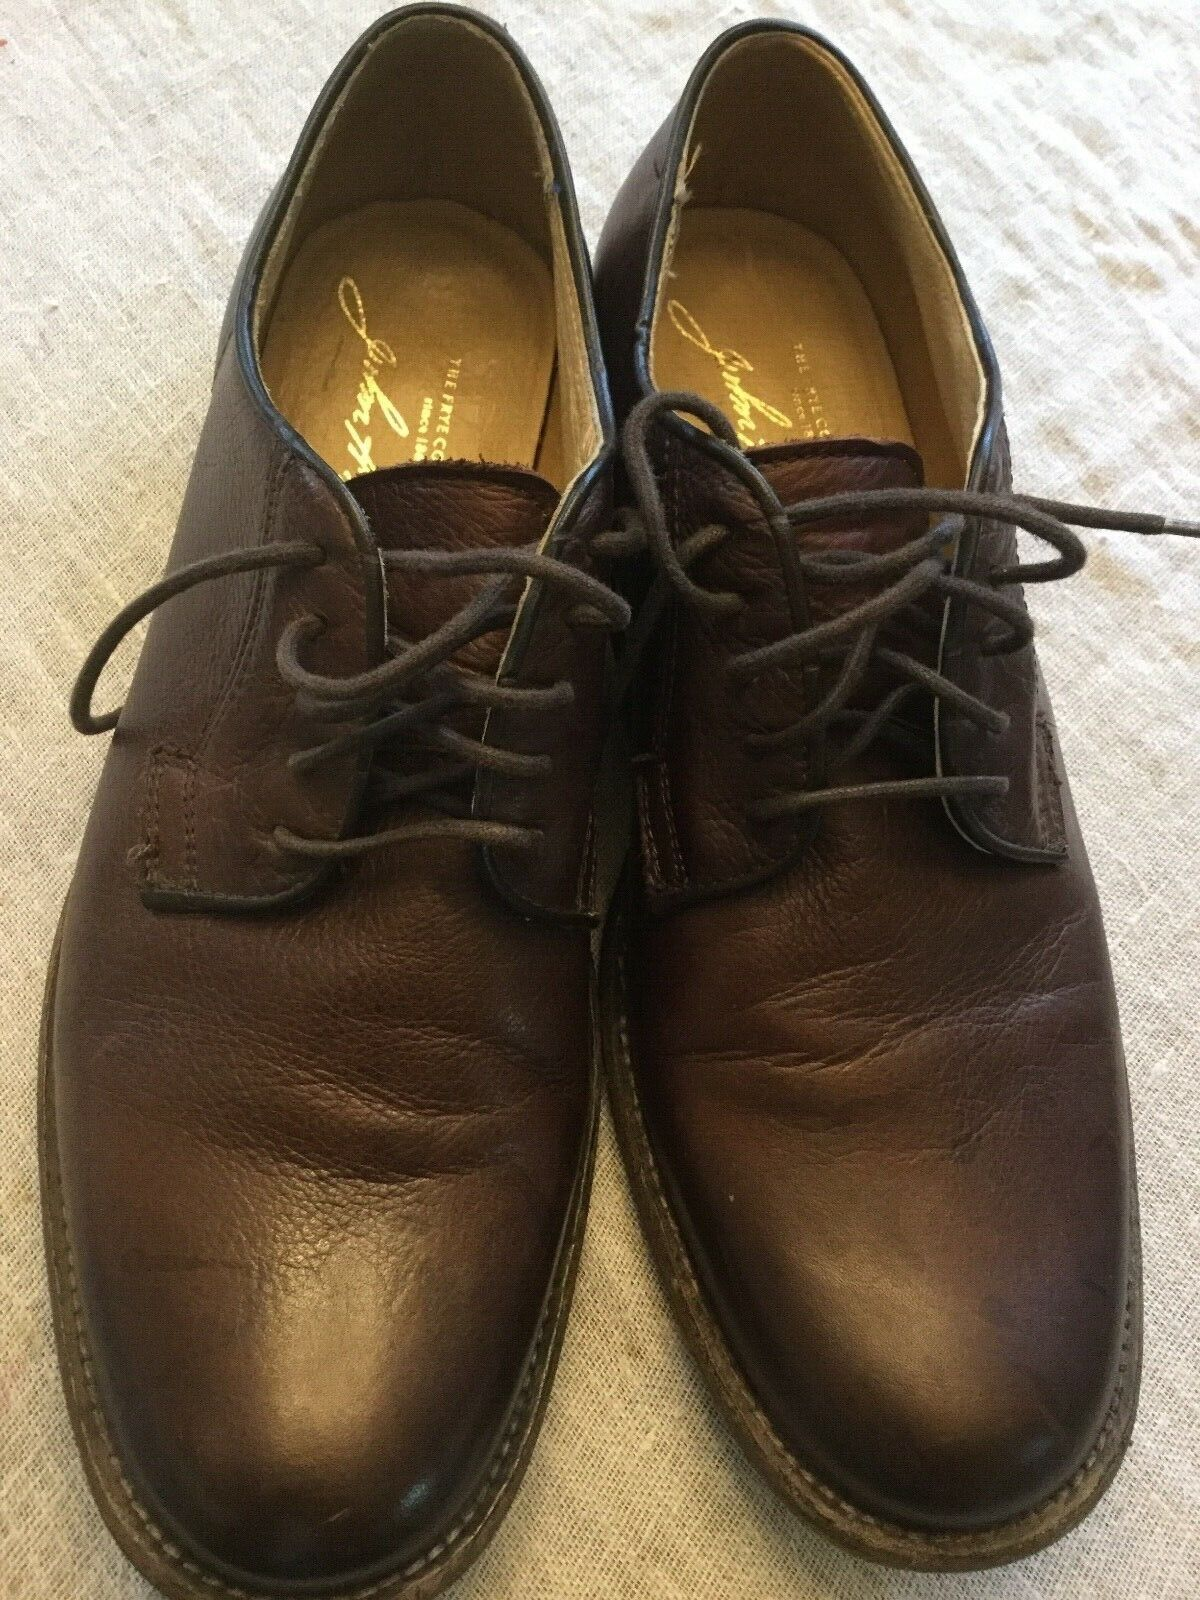 Men's Frye shoes size 10.5 brown